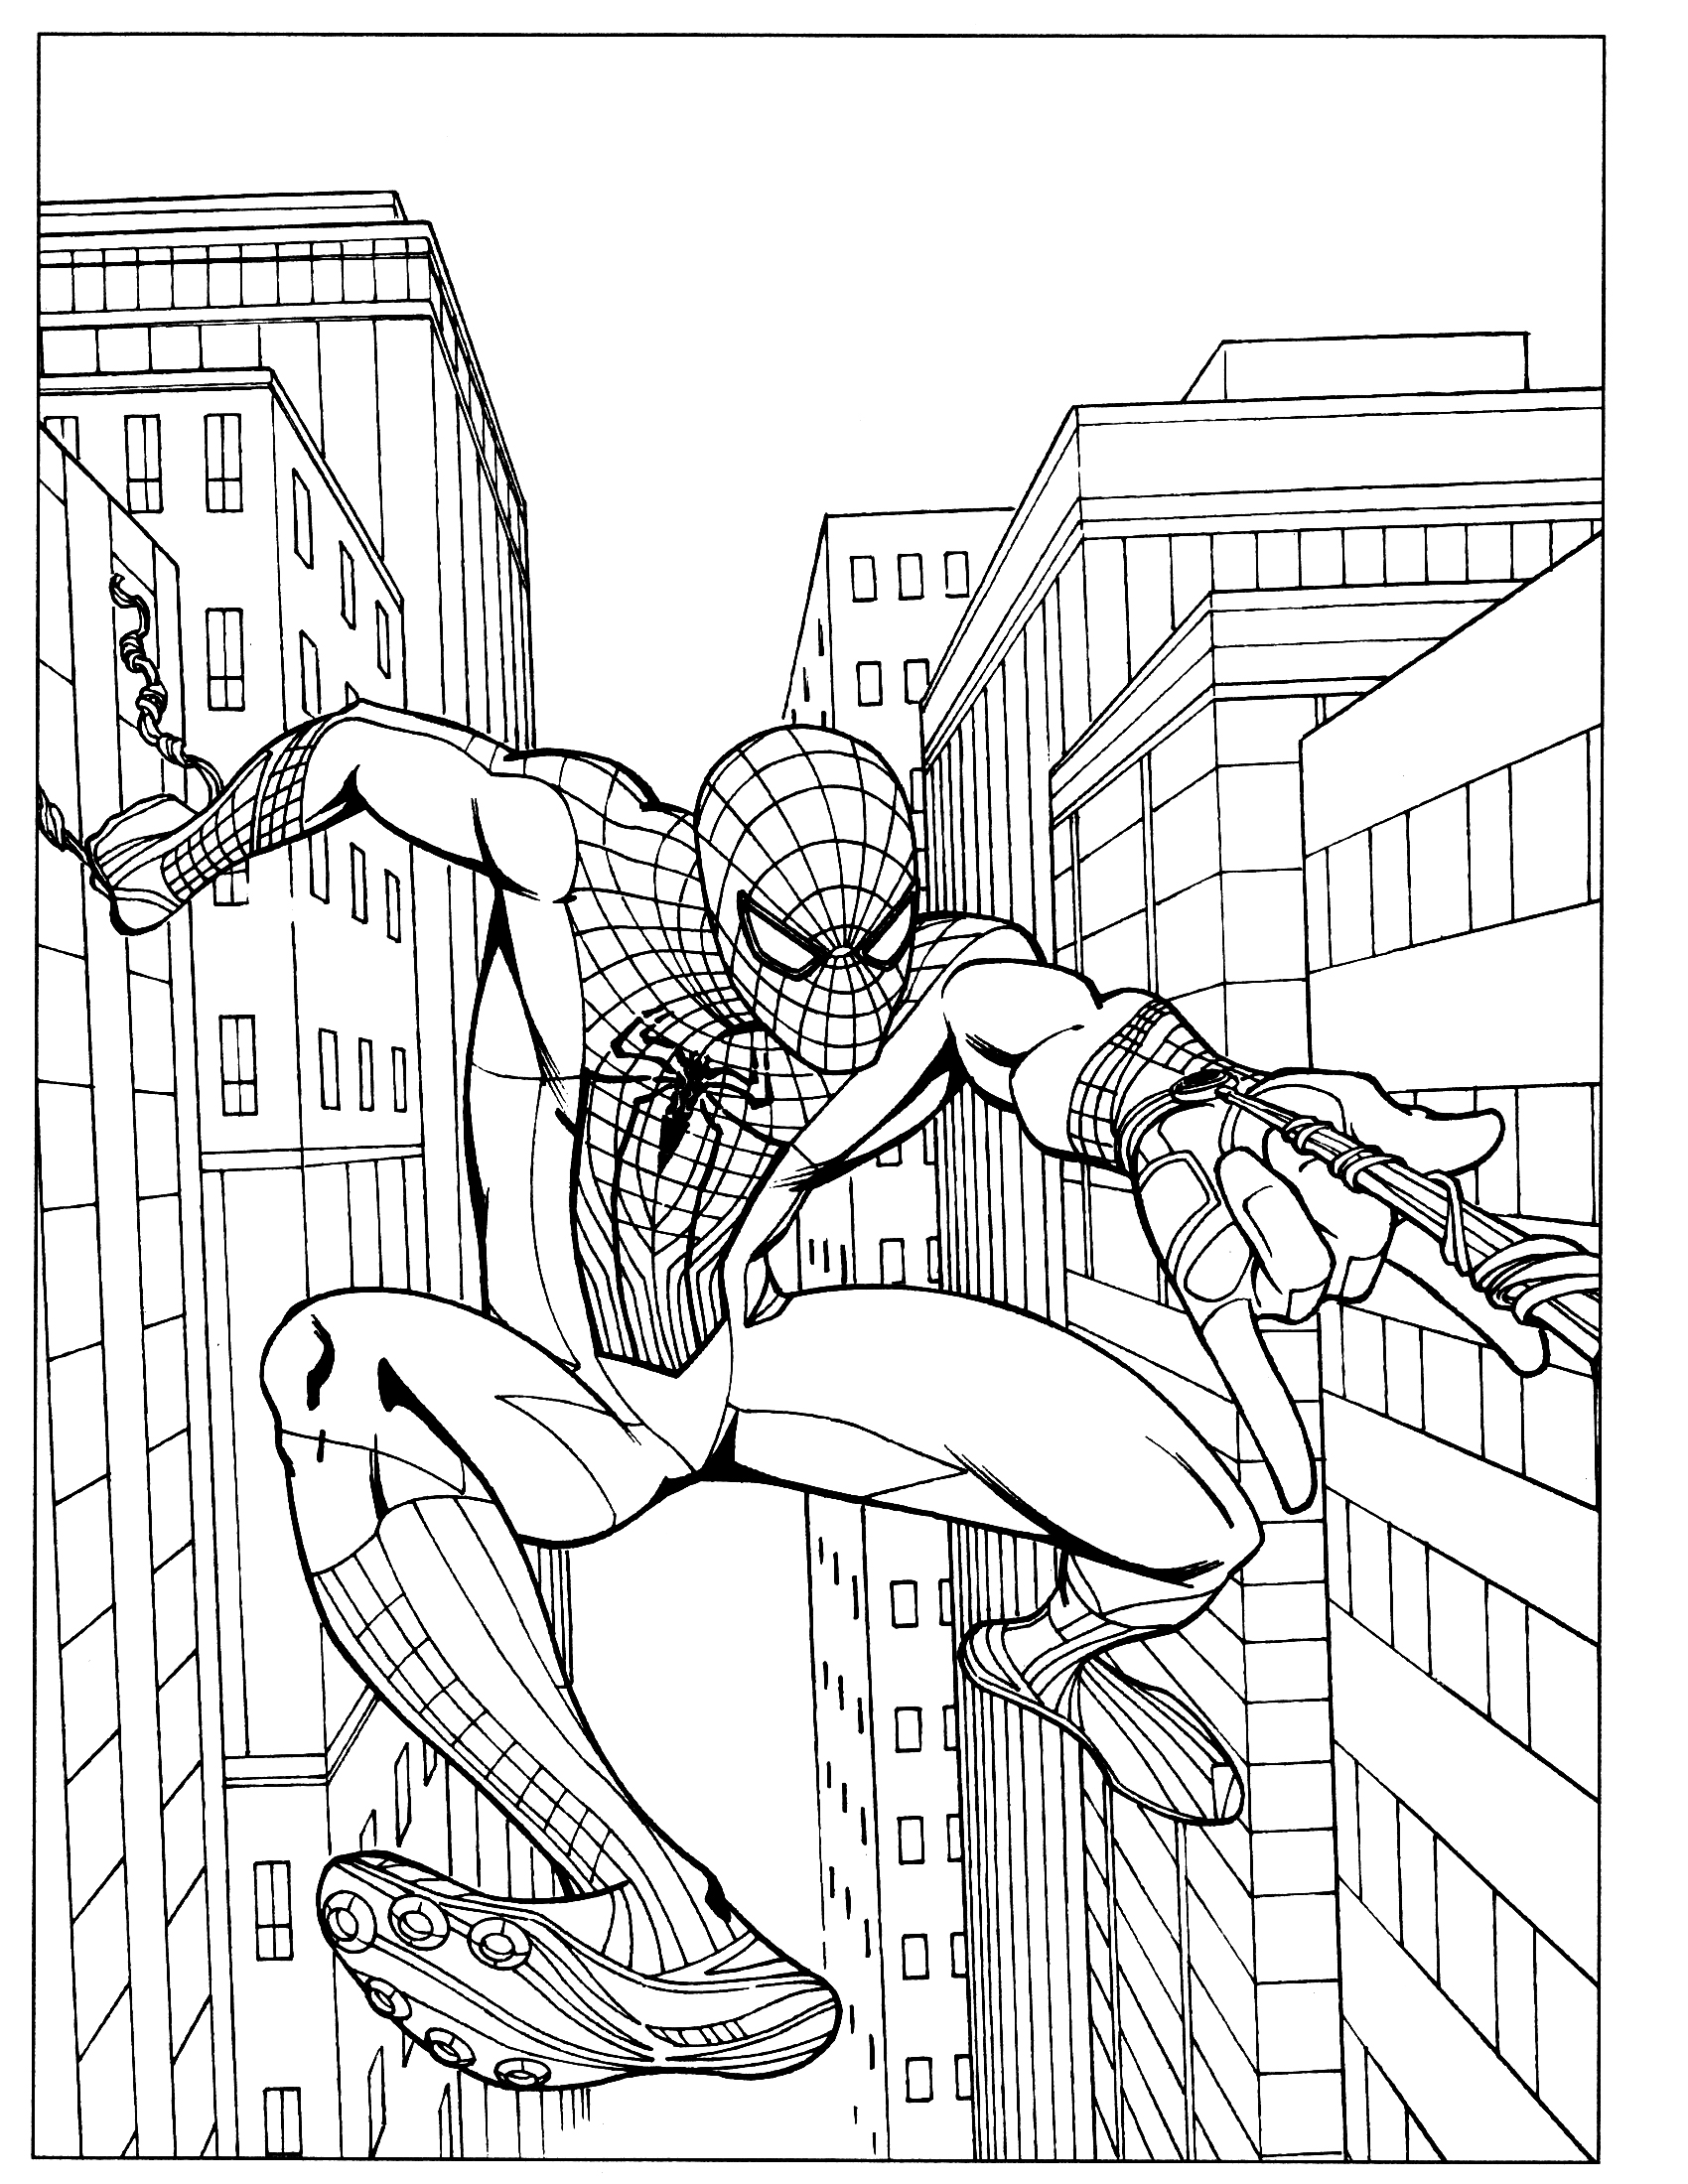 The Amazing Spider Man 2 Coloring Pages At Getdrawings Com Free